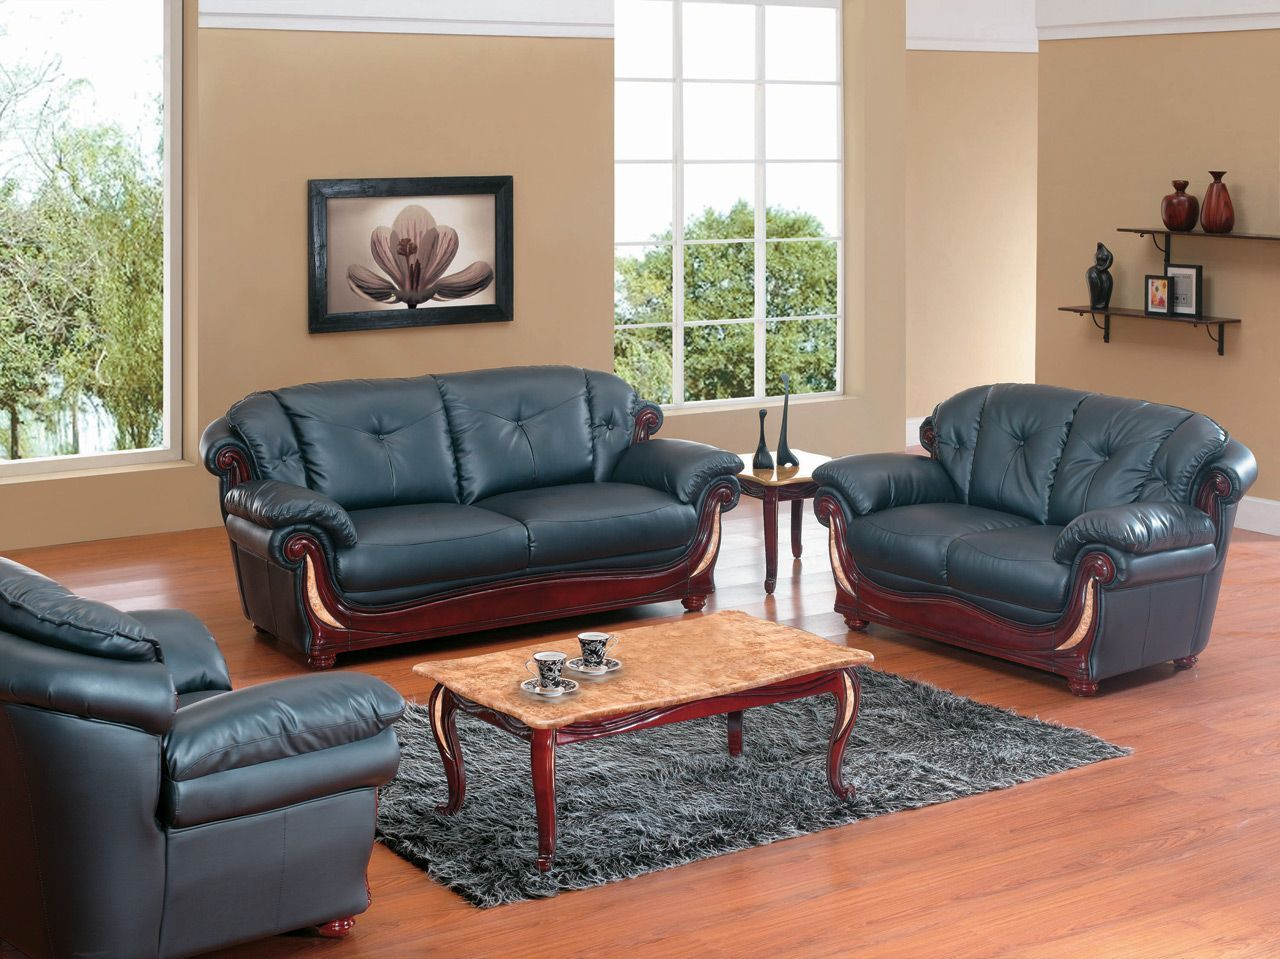 black leather with wood sofa  loveseat  chair 7991176